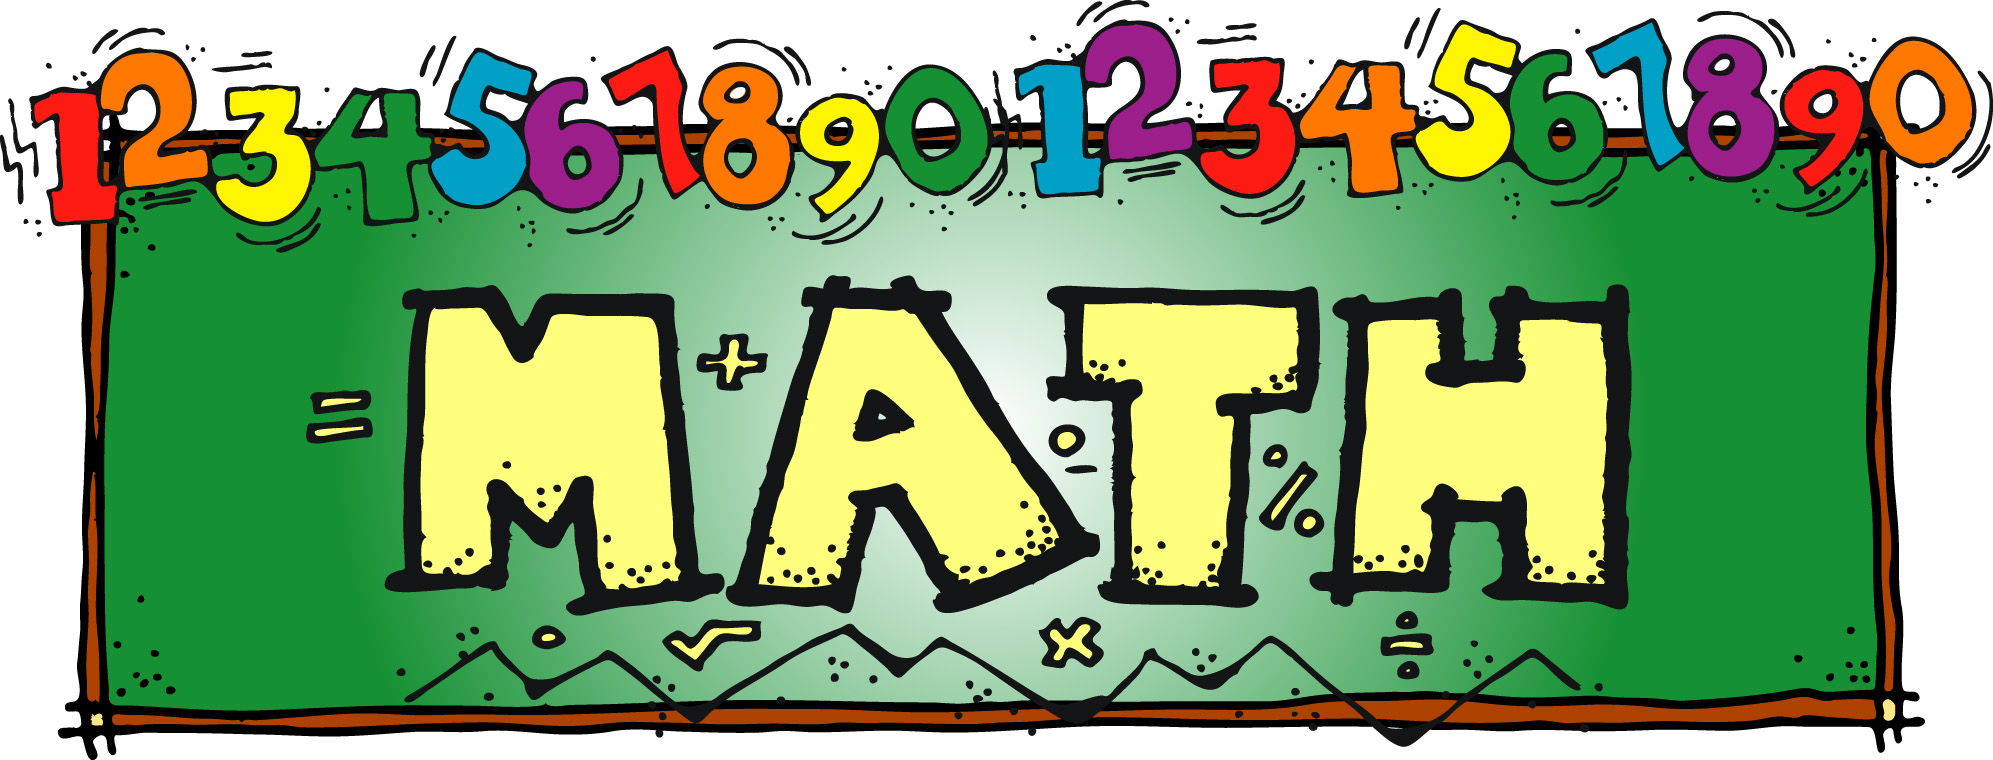 Mathematics clipart #9, Download drawings